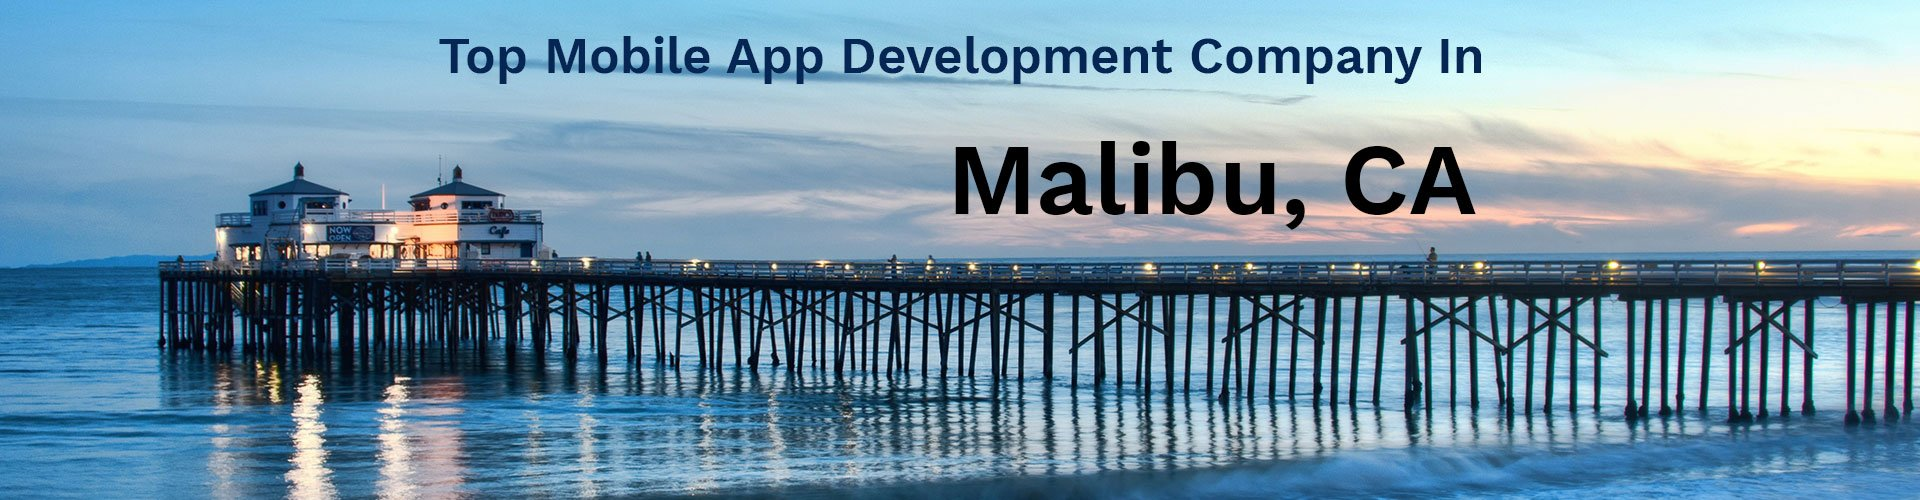 mobile app development company malibu